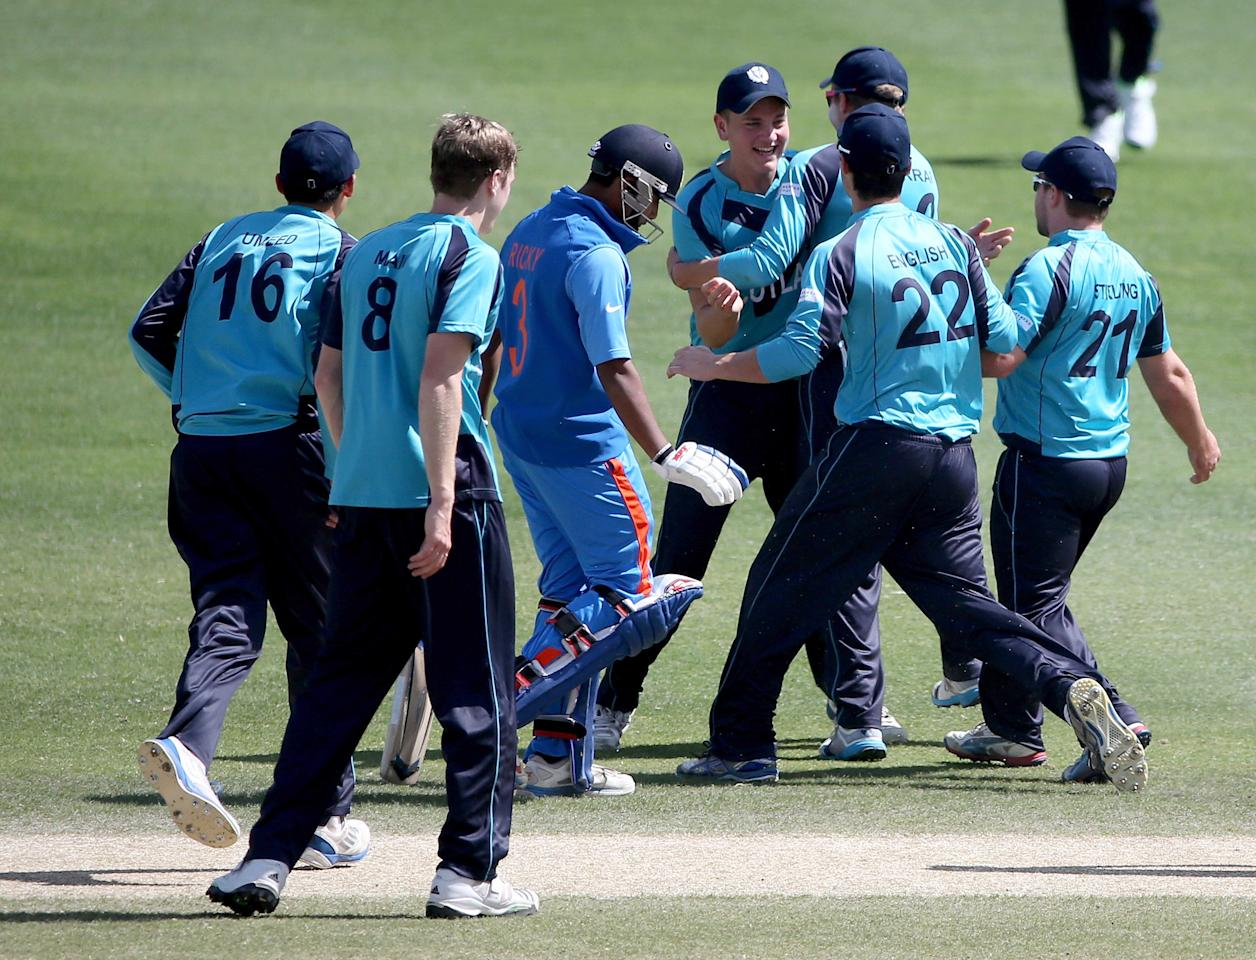 DUBAI, UNITED ARAB EMIRATES - FEBRUARY 17:  Players of Scotland celebrate the wicket of Ricky Bhui of India during the ICC U19 Cricket World Cup 2014 match between India and Scotland at the Dubai Sports City Cricket Stadium on February 17, 2014 in Dubai, United Arab Emirates.  (Photo by Francois Nel - IDI/IDI via Getty Images)